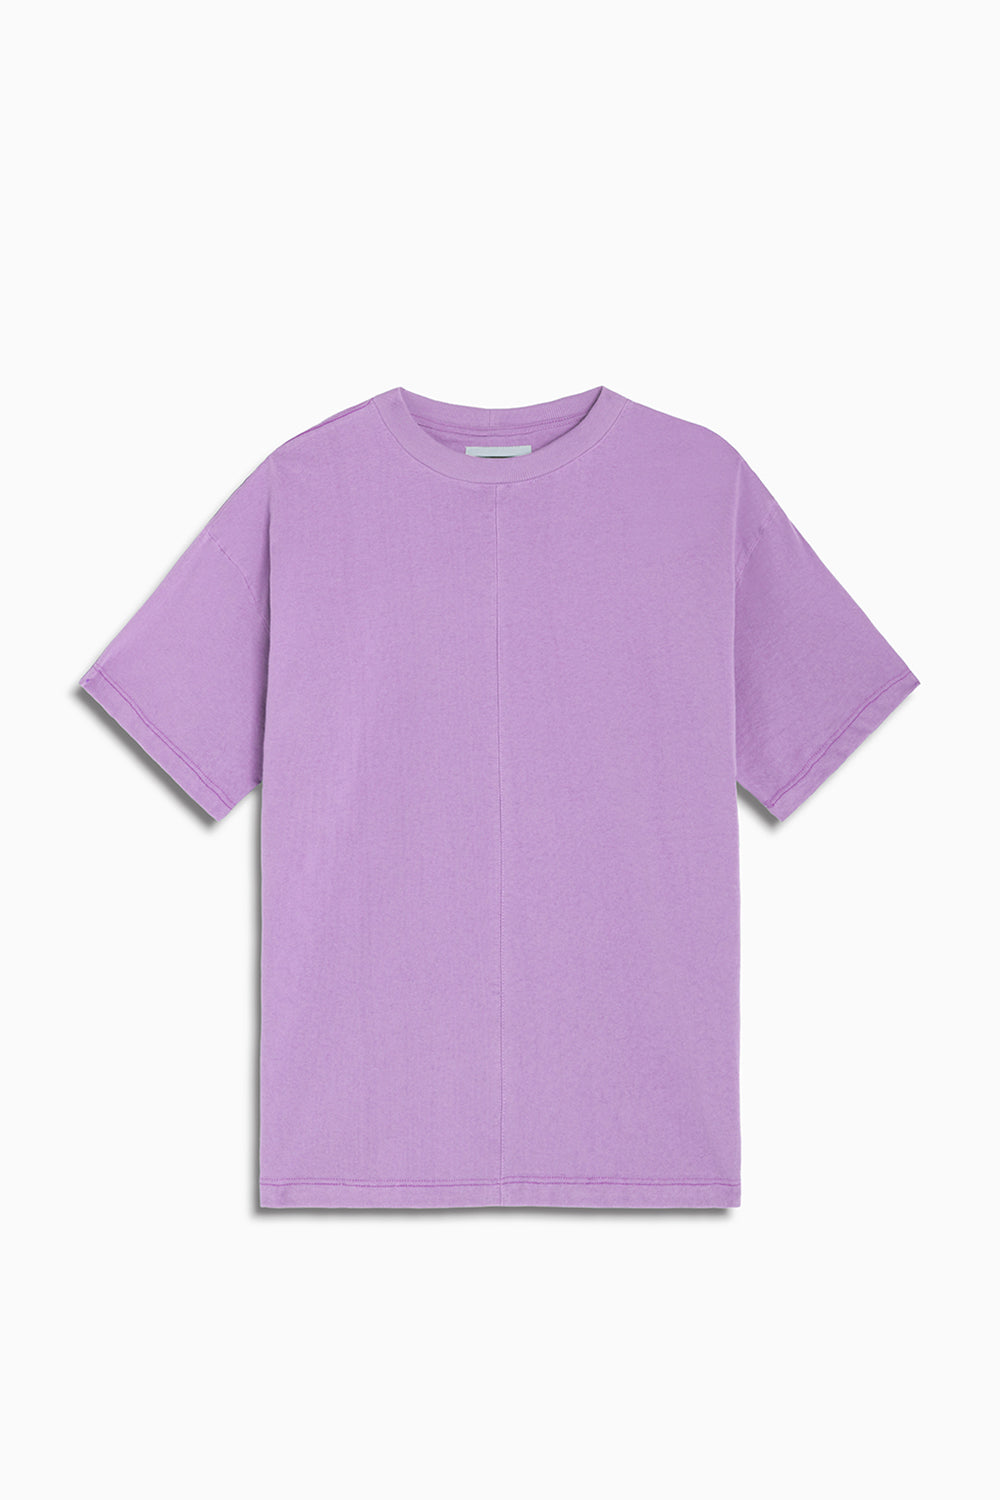 standard tee / purple haze